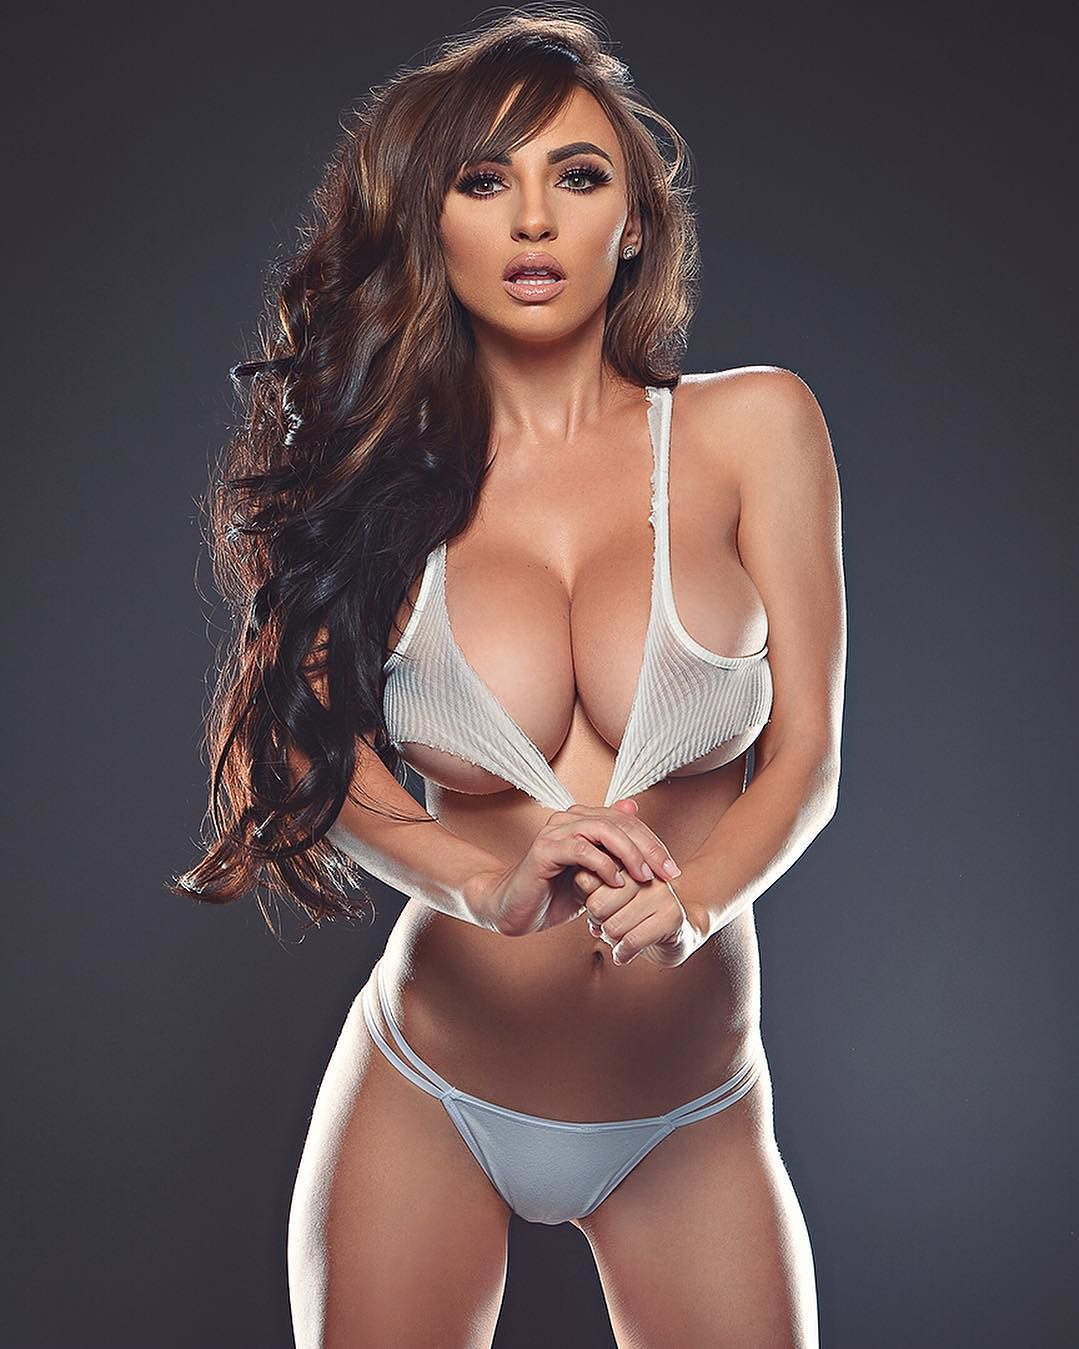 Iryna ivanova the perfect boobs